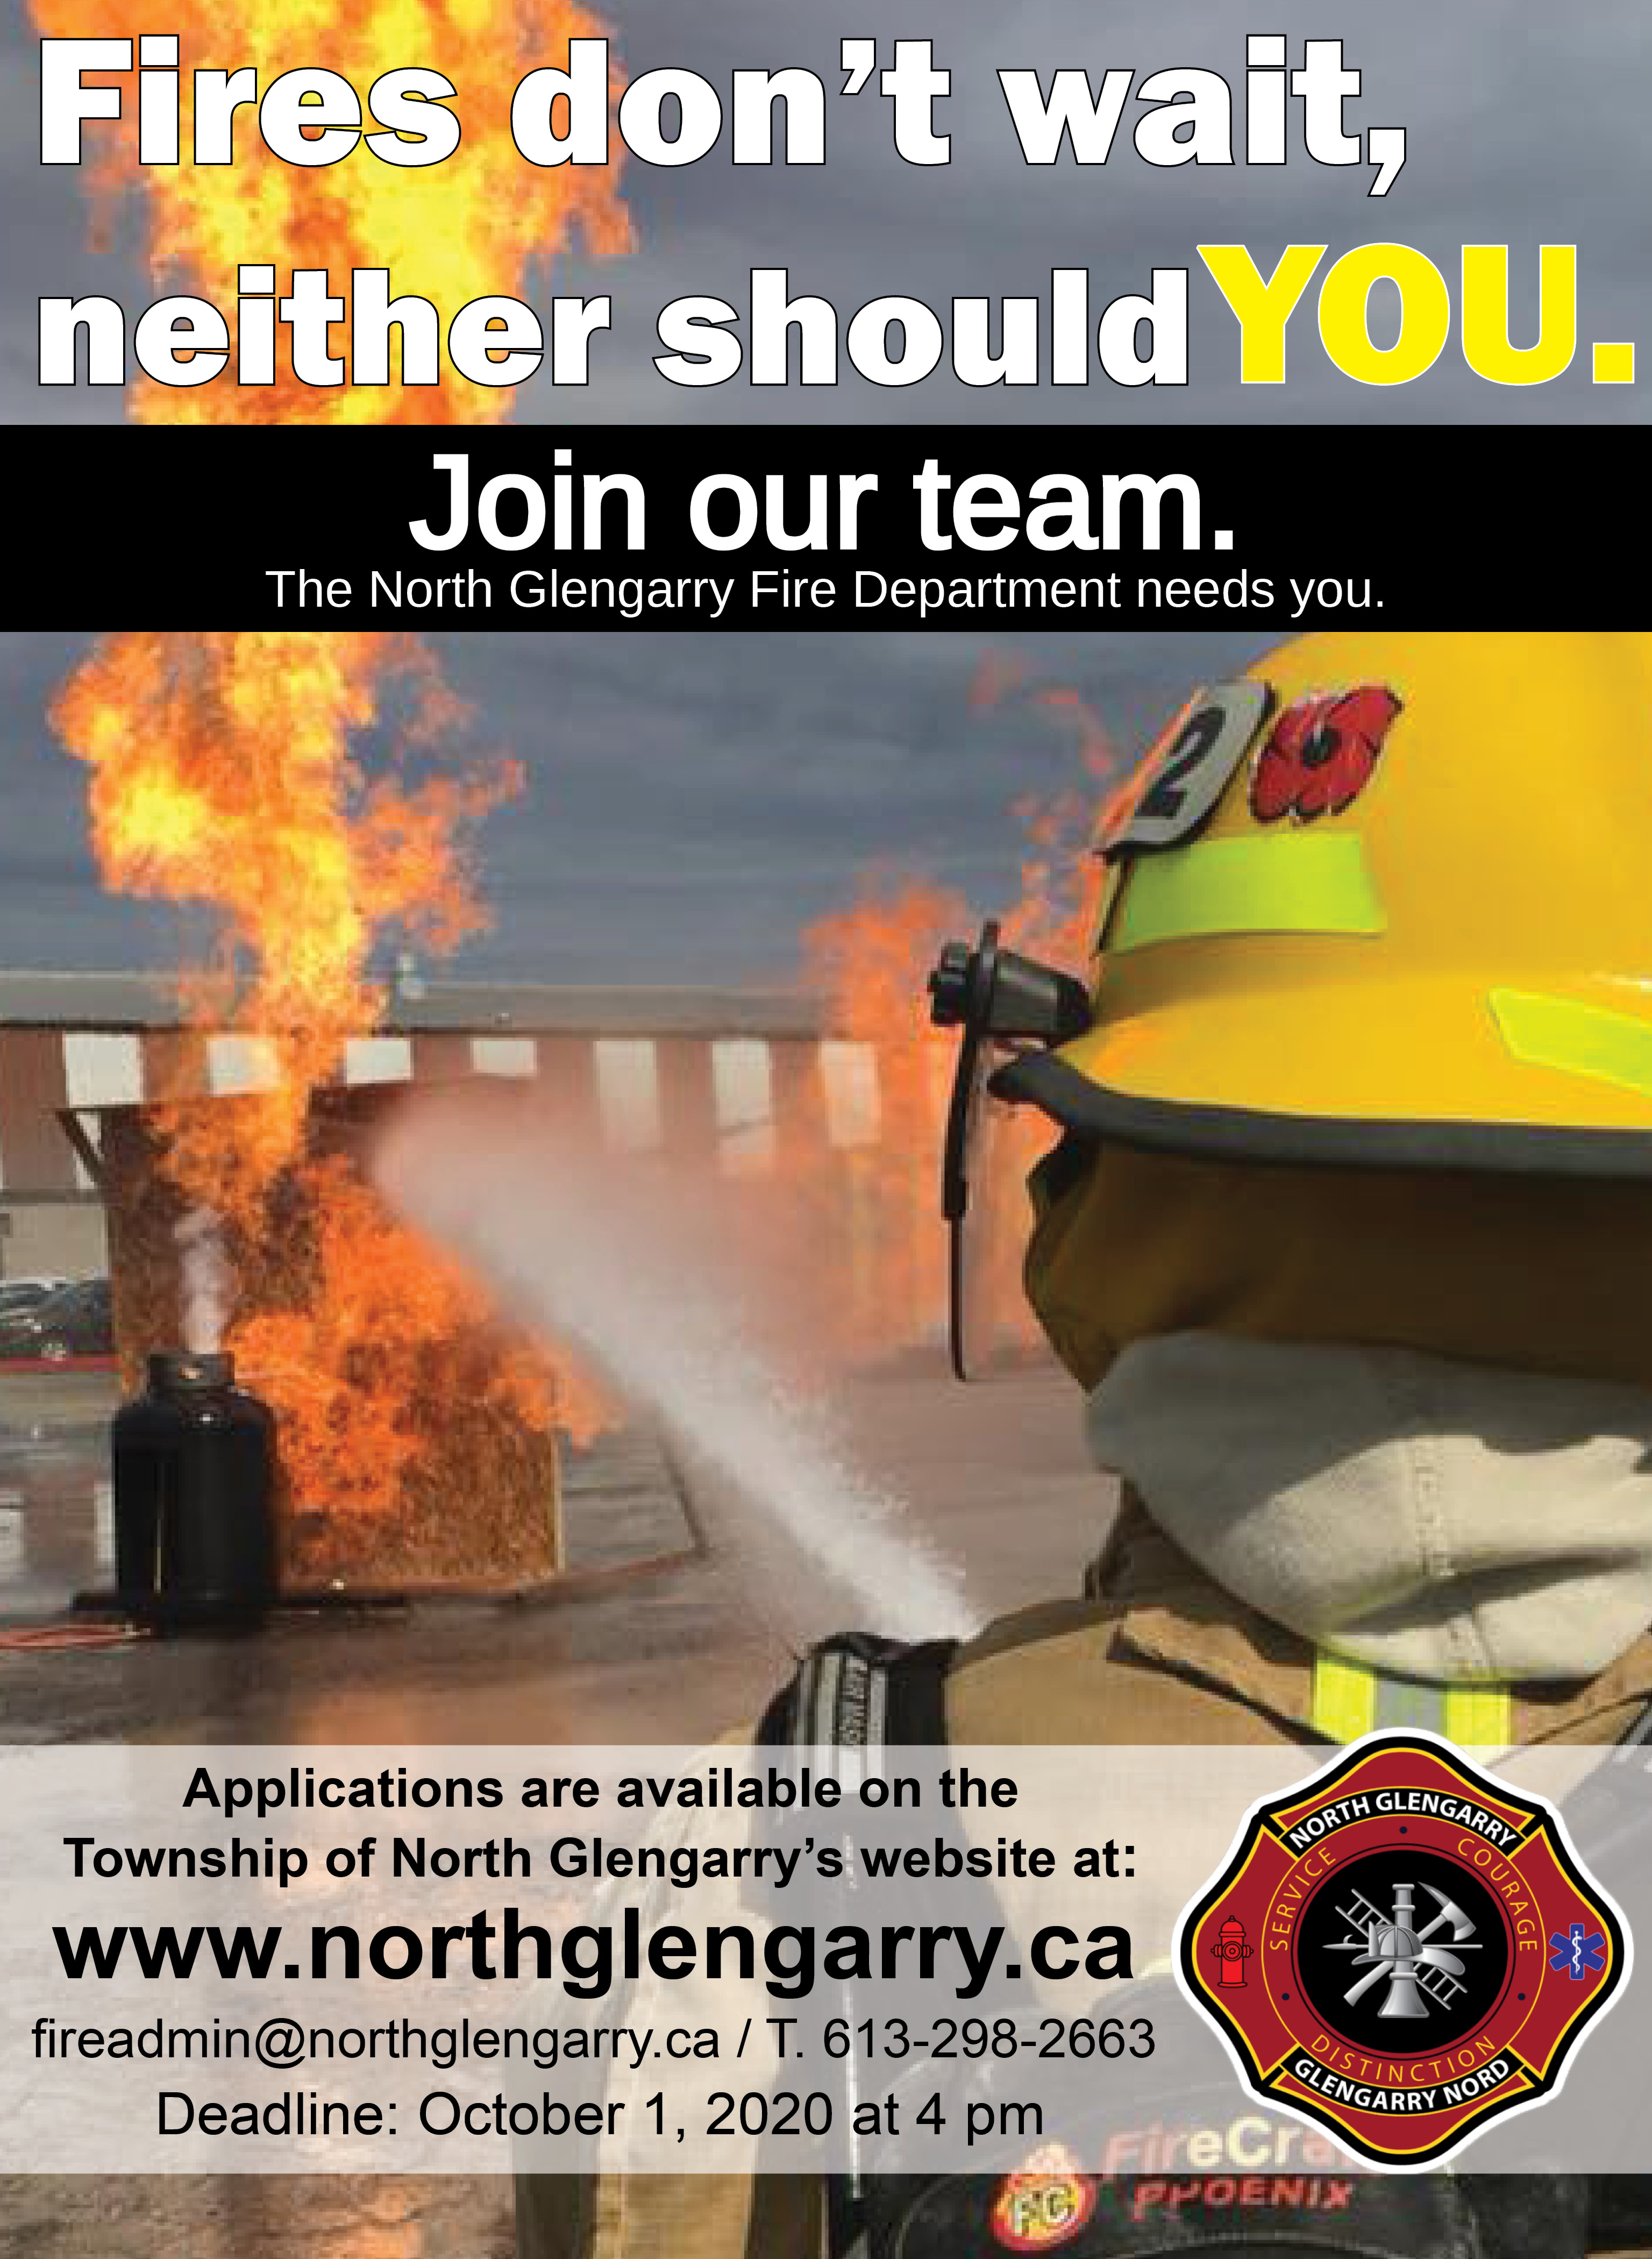 The North Glengarry Fire Department is recruiting